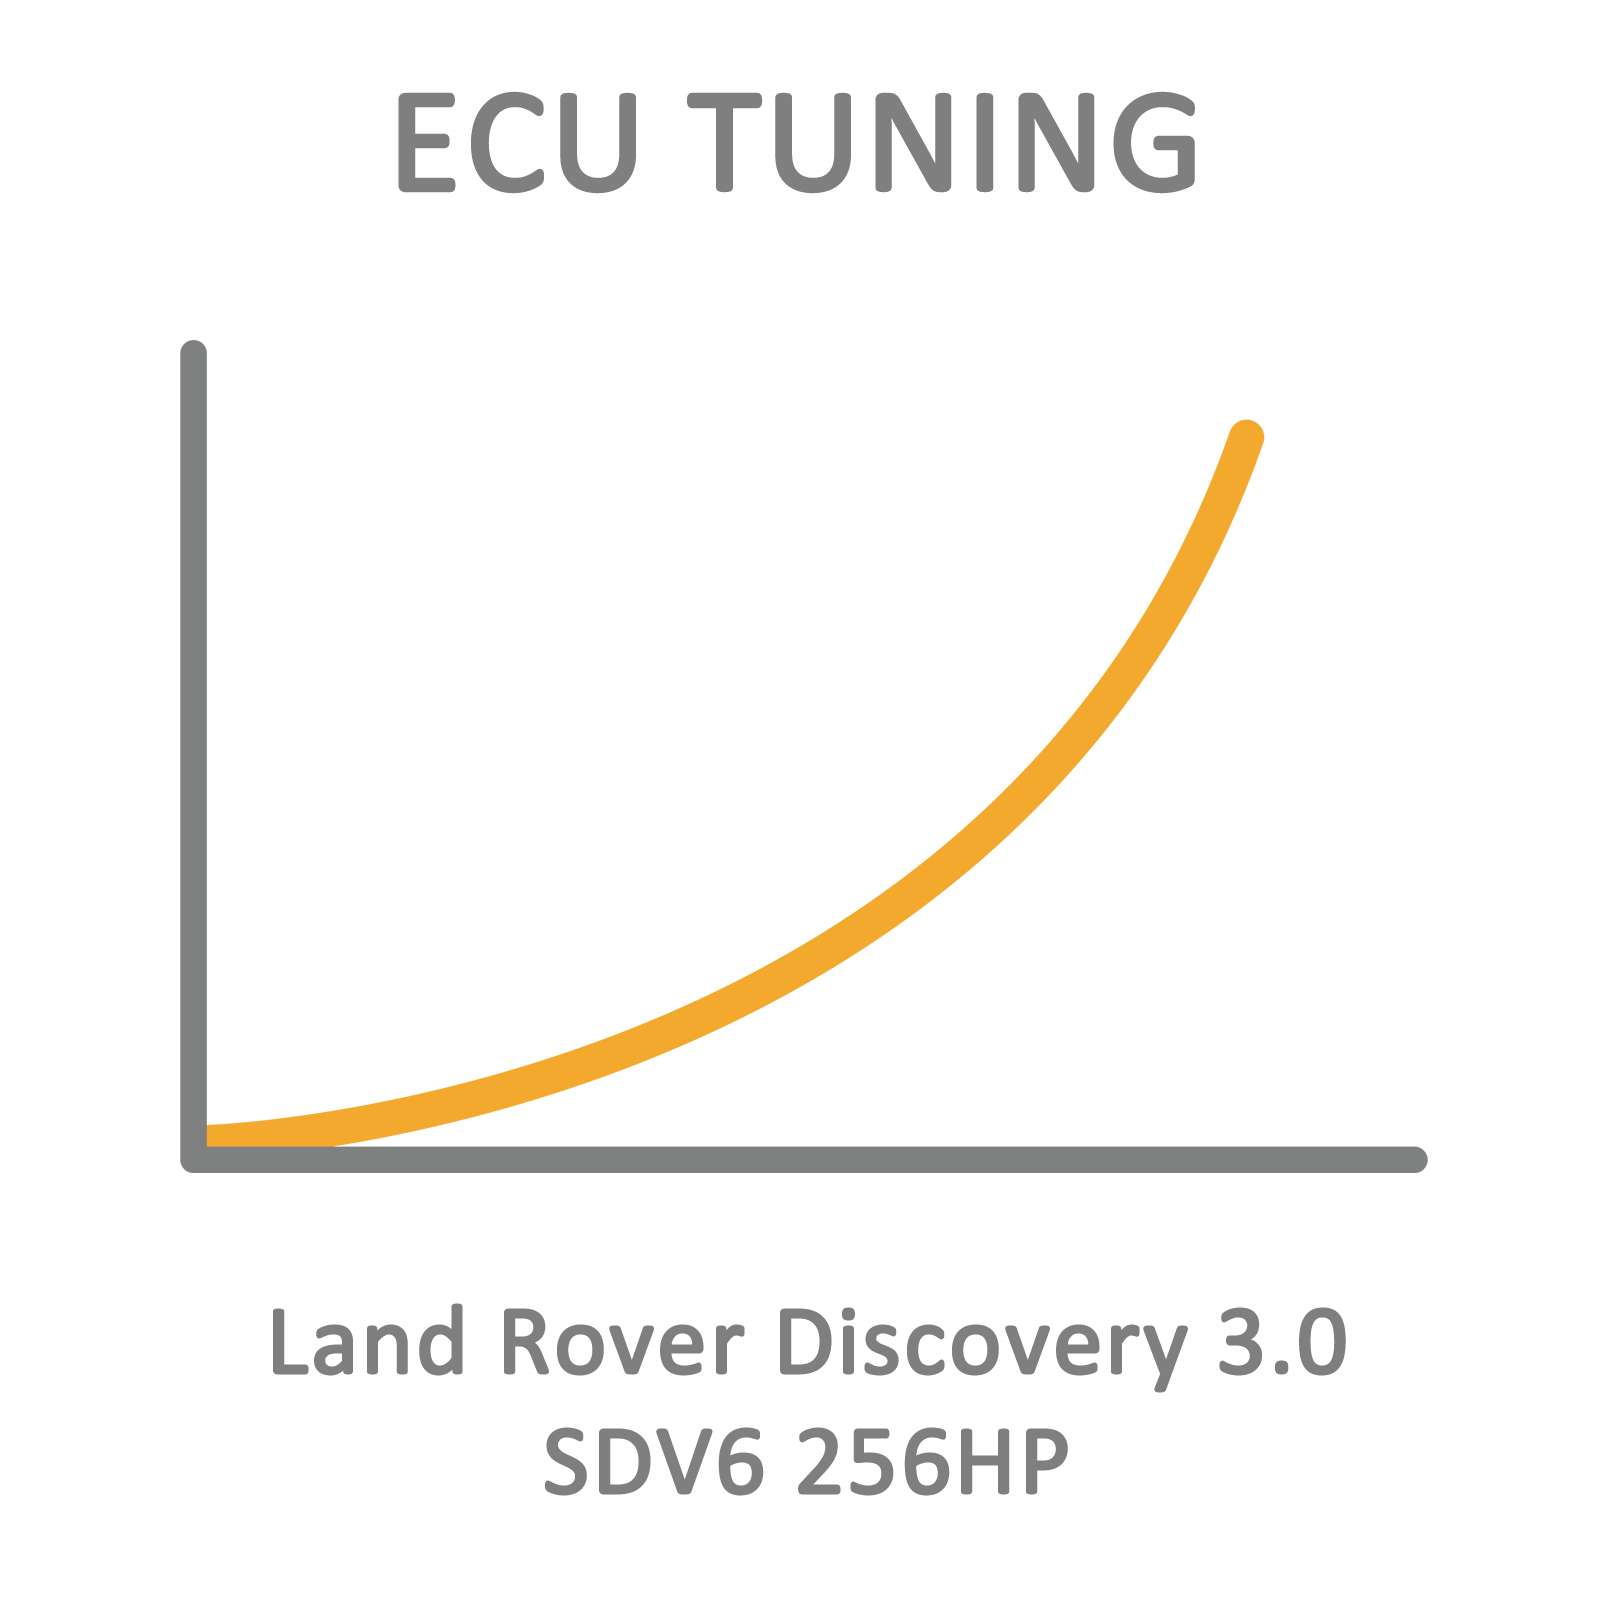 Land Rover Discovery 3.0 SDV6 256HP ECU Tuning Remapping